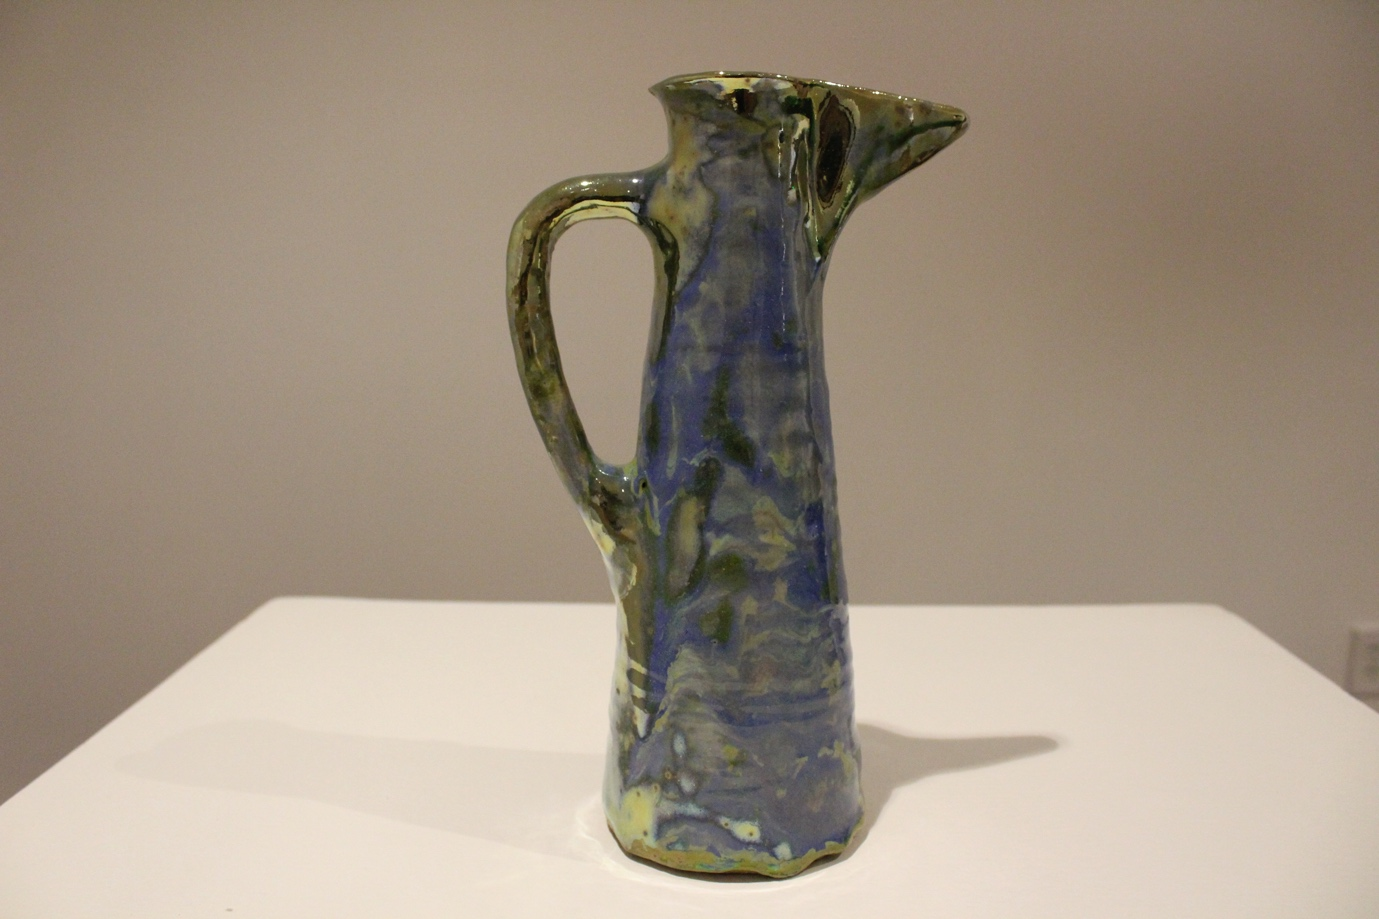 Pitcher, Cylindrical-form, with Wide Pouring Spout, Cerulean Blue-to-Greenish-Gold Glossy Surface piece.  navigate down for further details